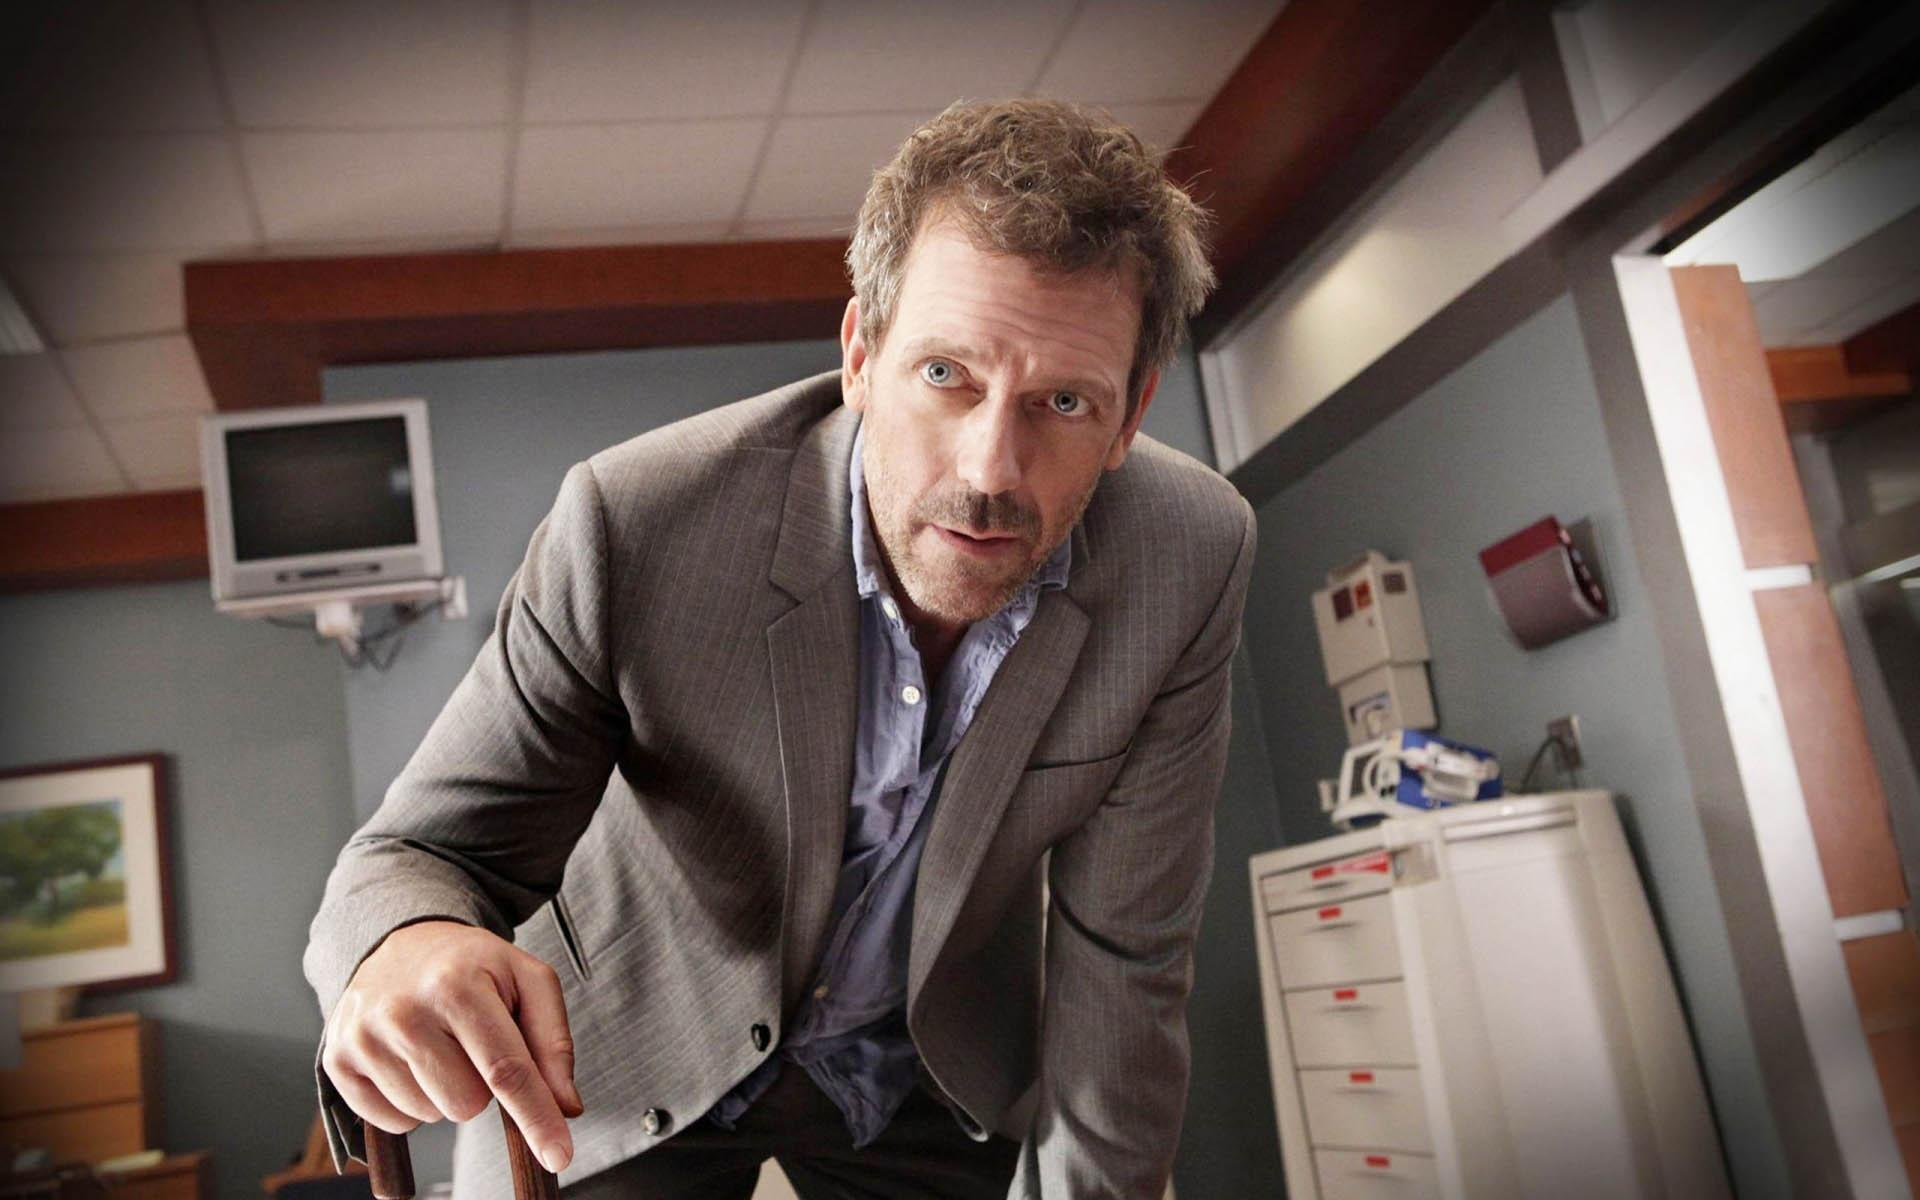 House MD Wallpaper 7